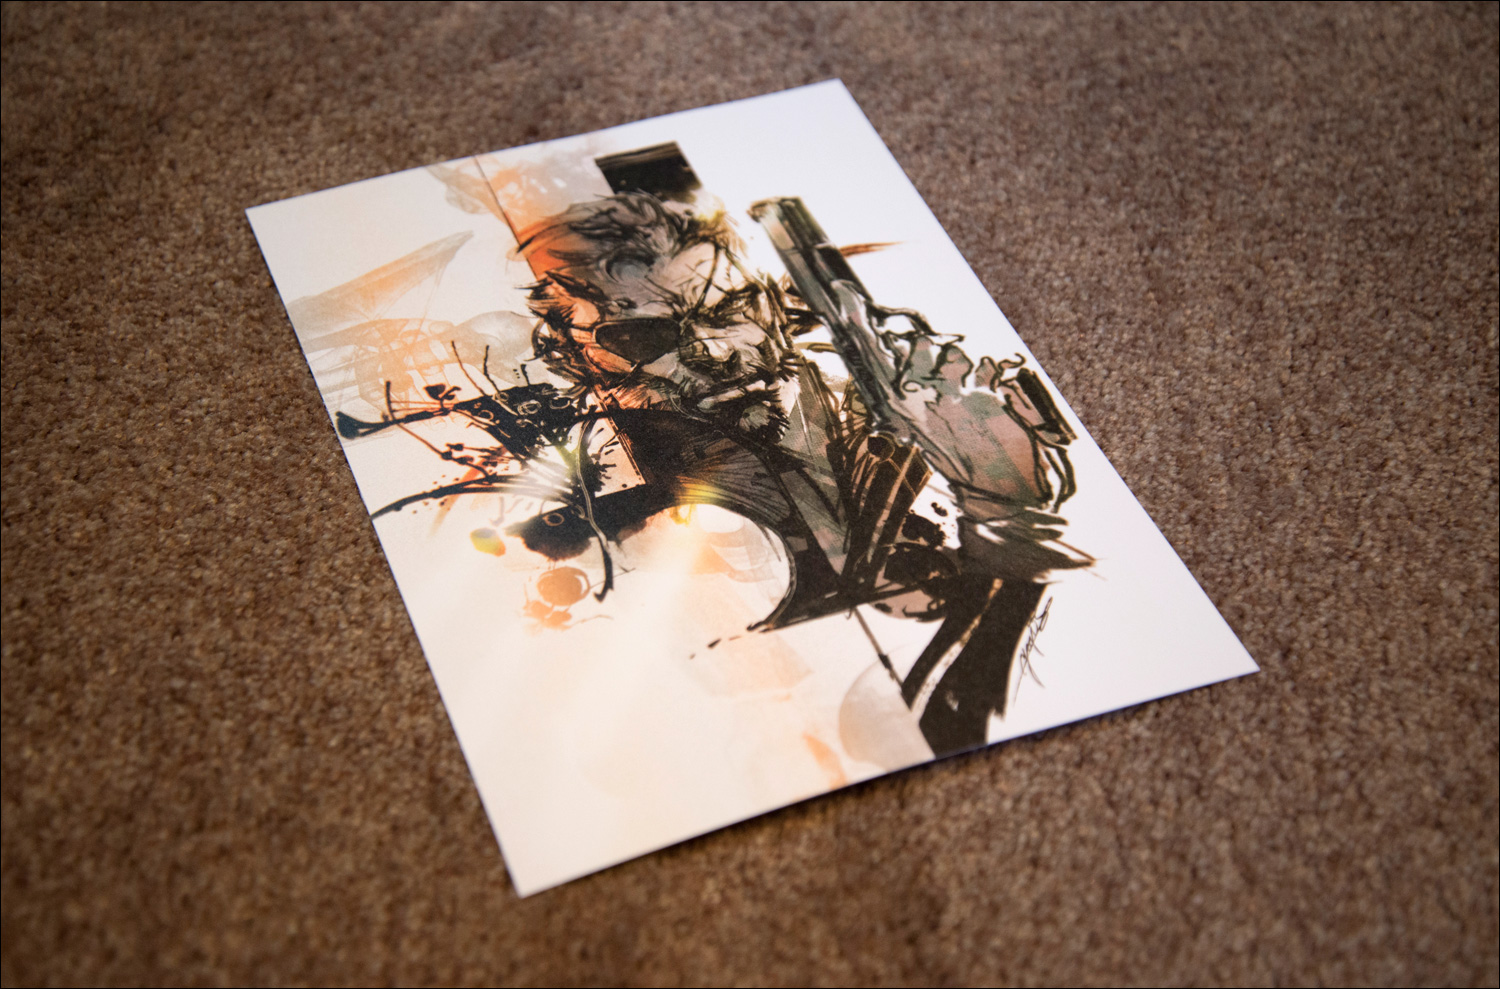 Metal-Gear-Solid-V-The-Phantom-Pain-Collector's-Edition-Guide-Lithograph-1